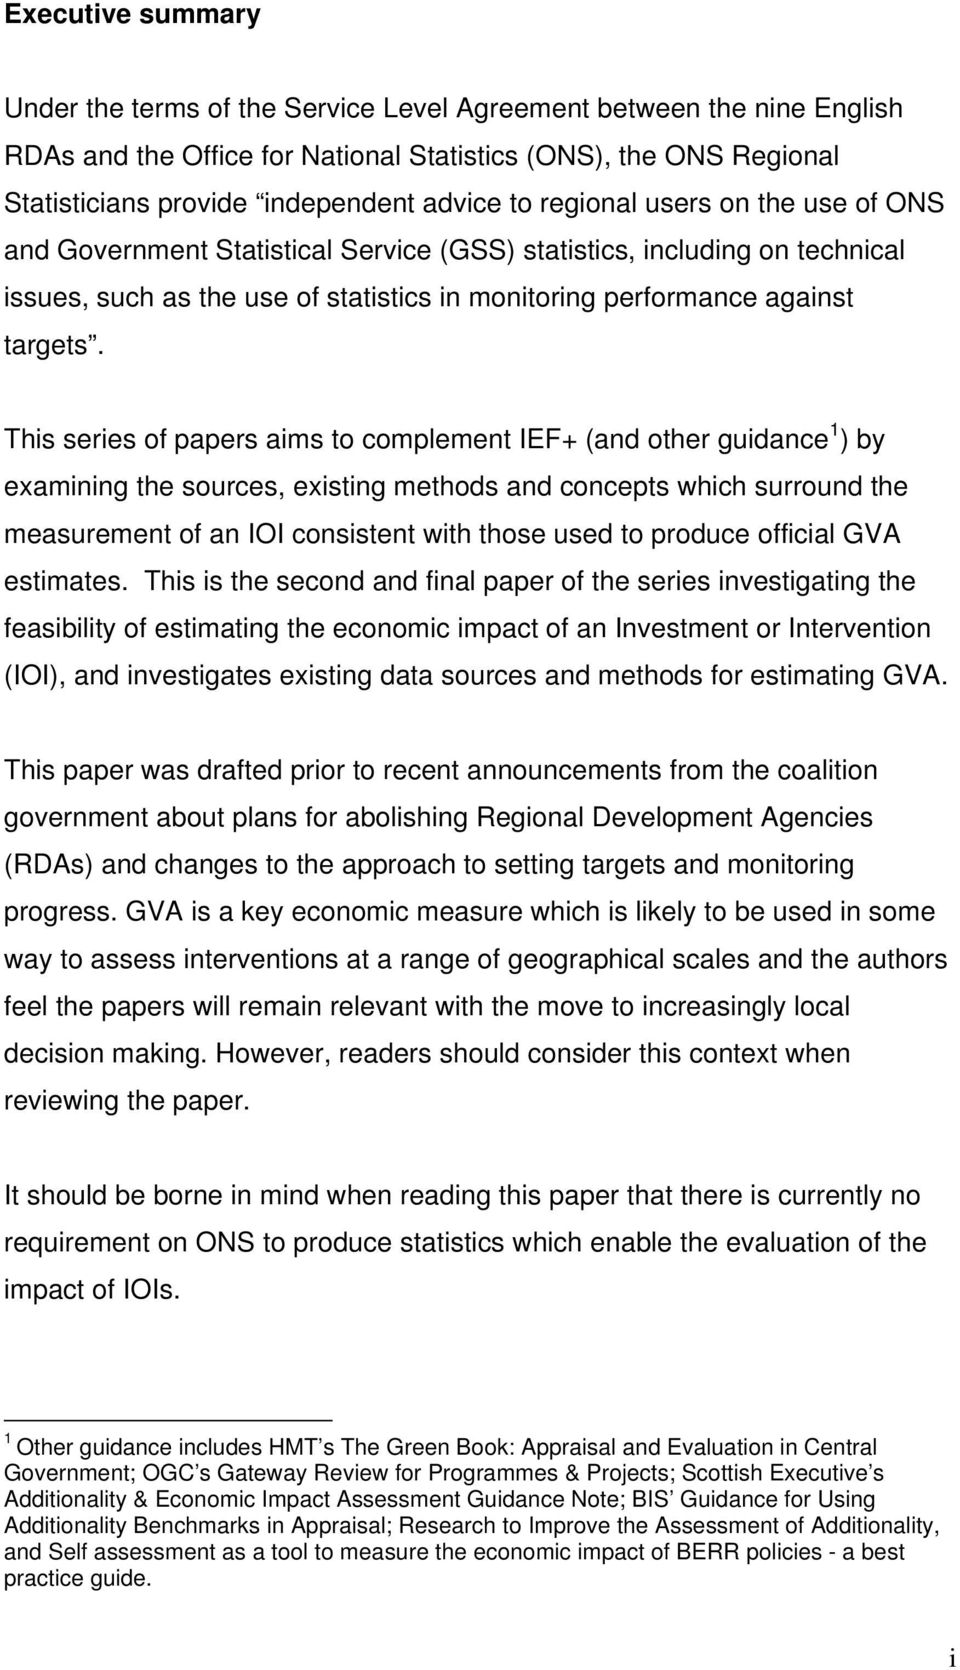 This series of papers aims to complement IEF+ (and other guidance 1 ) by examining the sources, existing methods and concepts which surround the measurement of an IOI consistent with those used to